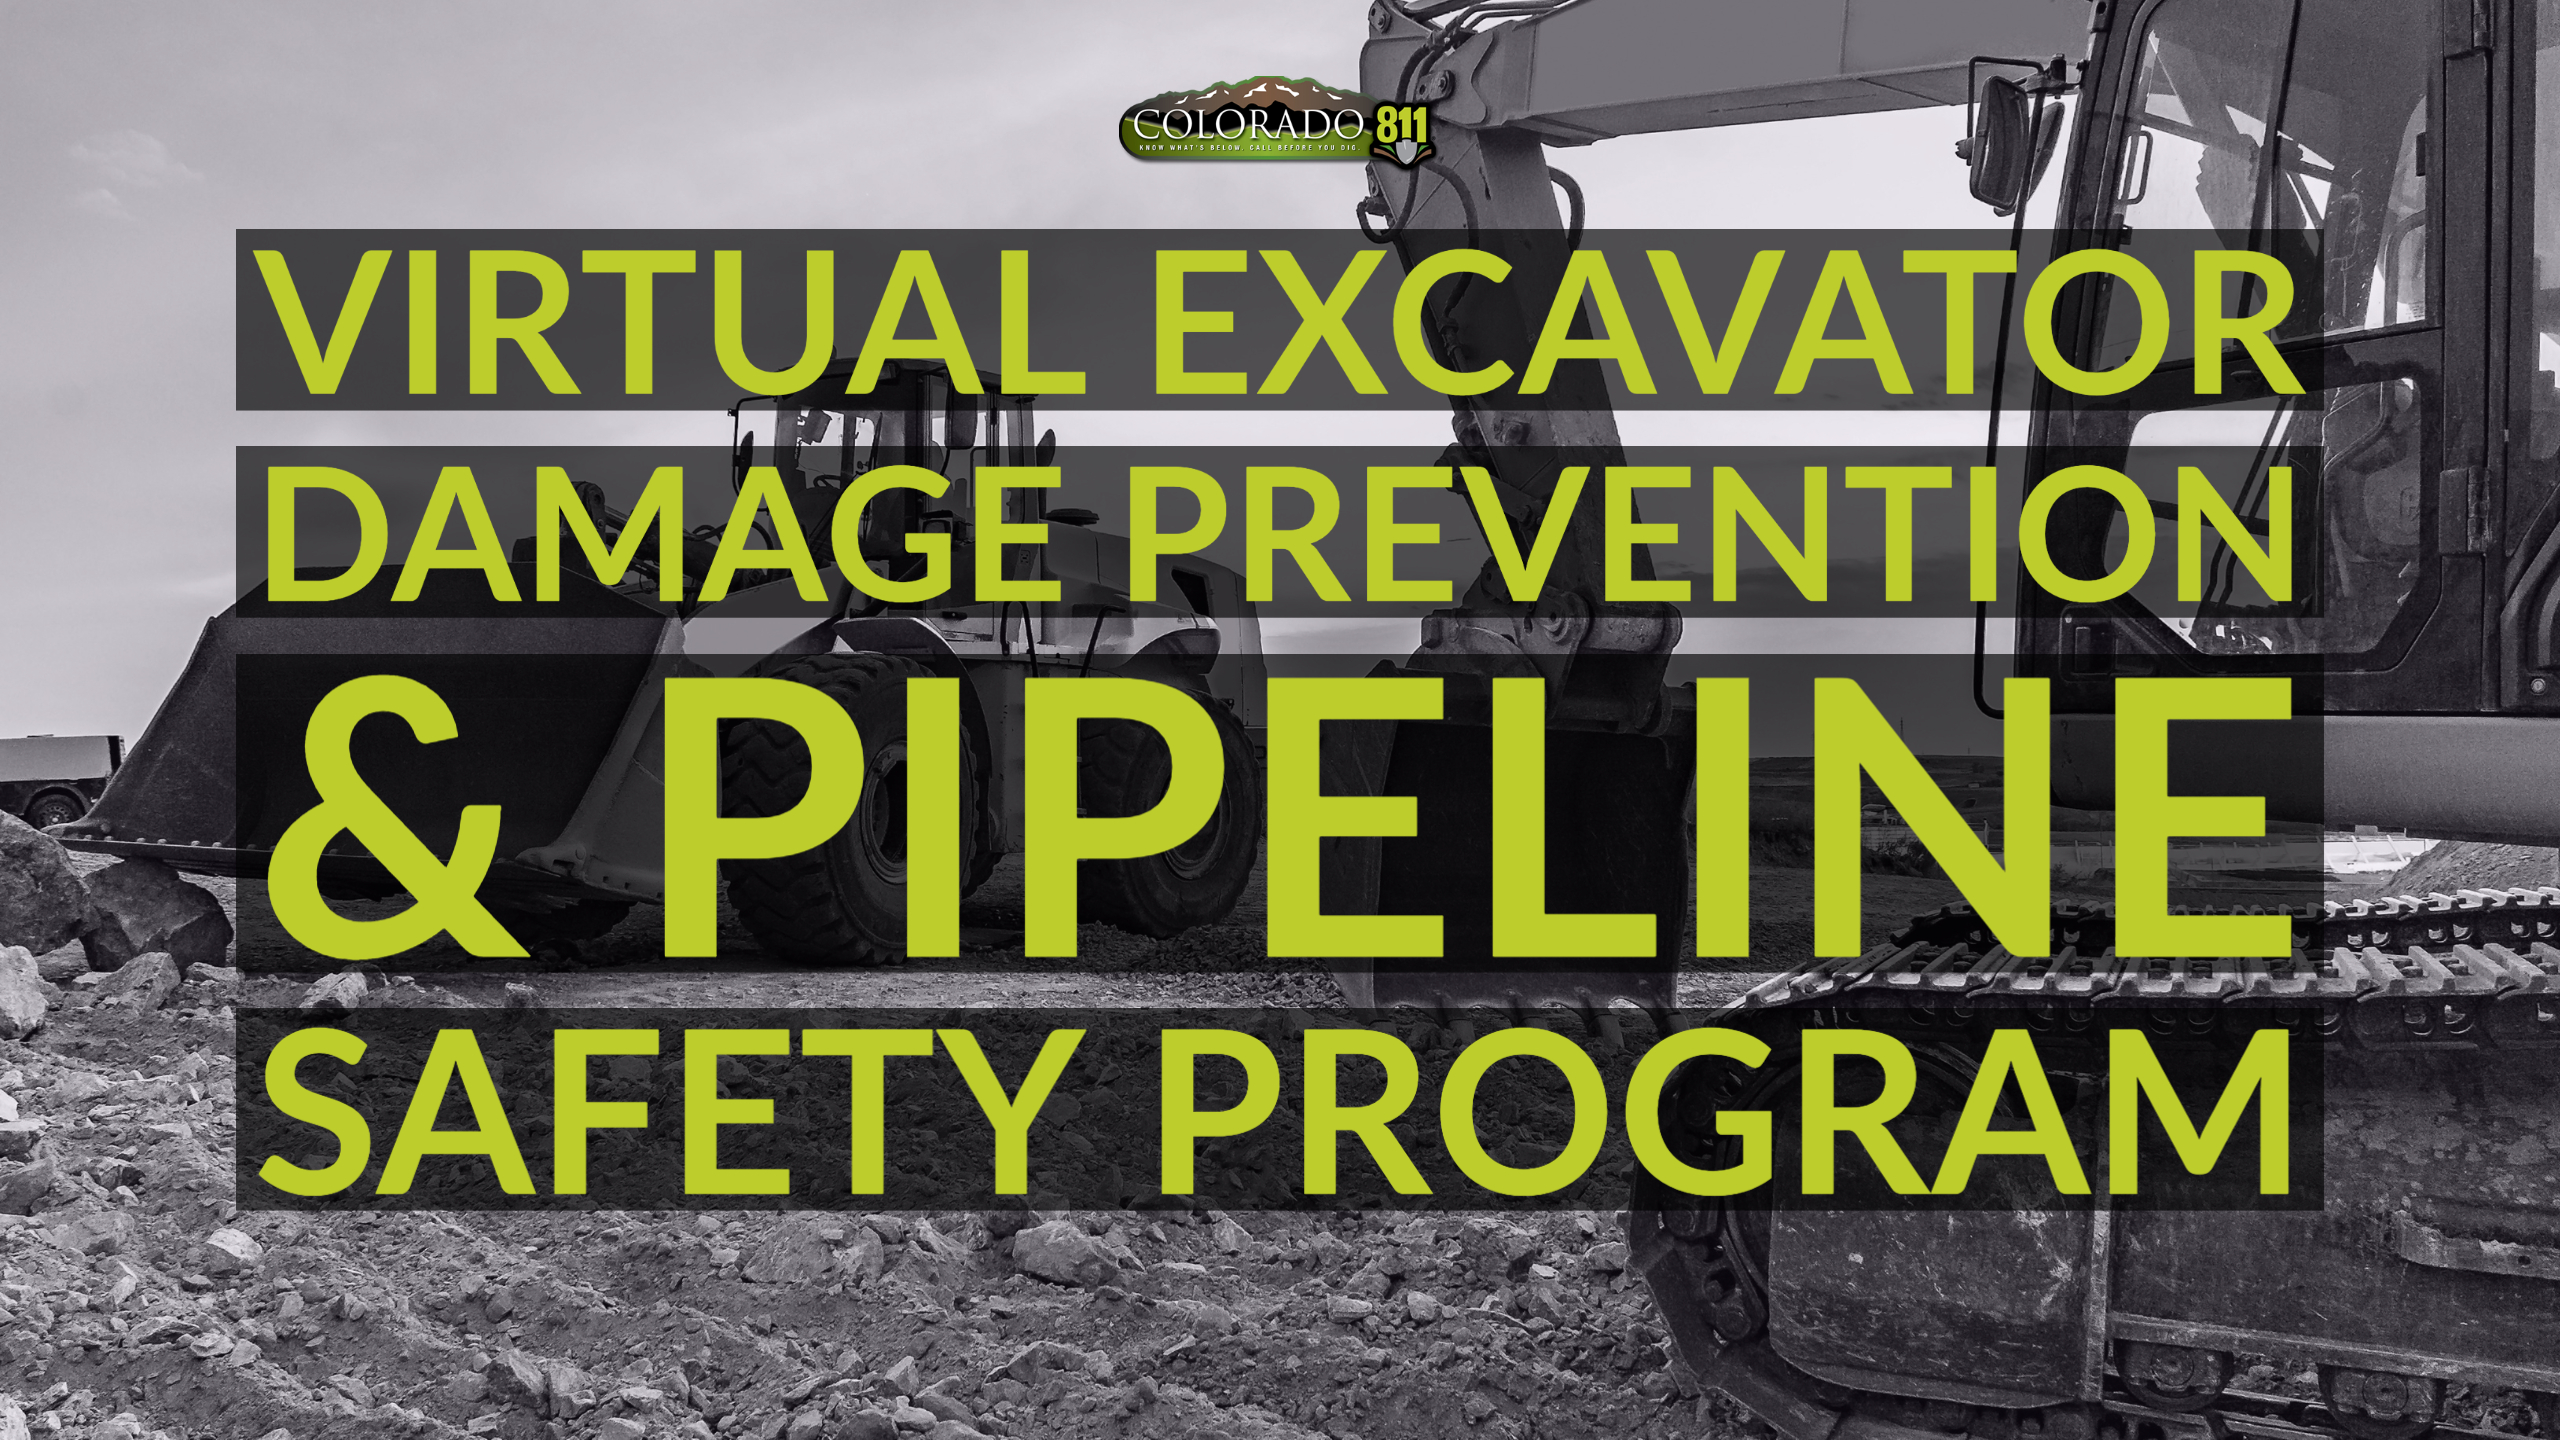 Virtual Excavator Damage Prevention Pipeline Safety Program Southwest Region Colorado 811 Miss colorado usa is confidently positively undeniably beautiful. colorado 811